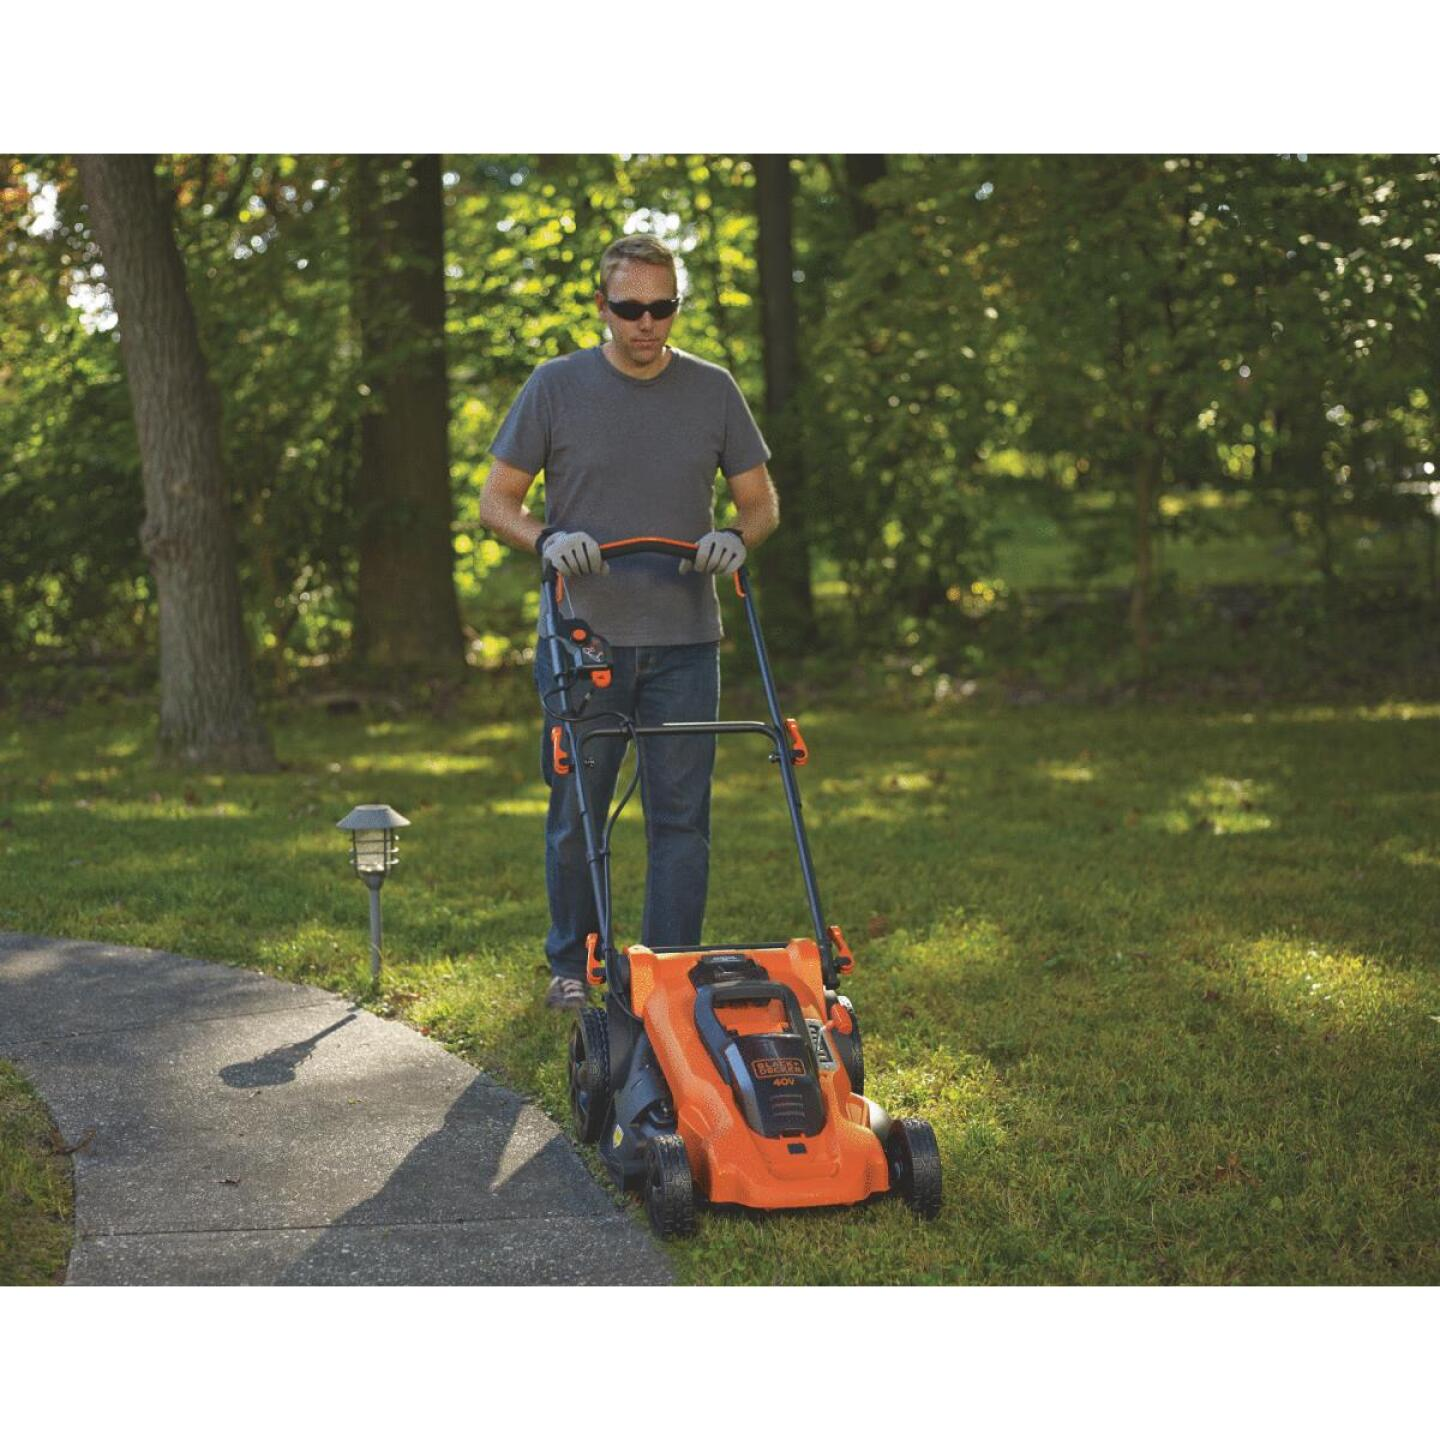 Black & Decker 20 In. 40V MAX Lithium Ion Push Cordless Lawn Mower Image 3